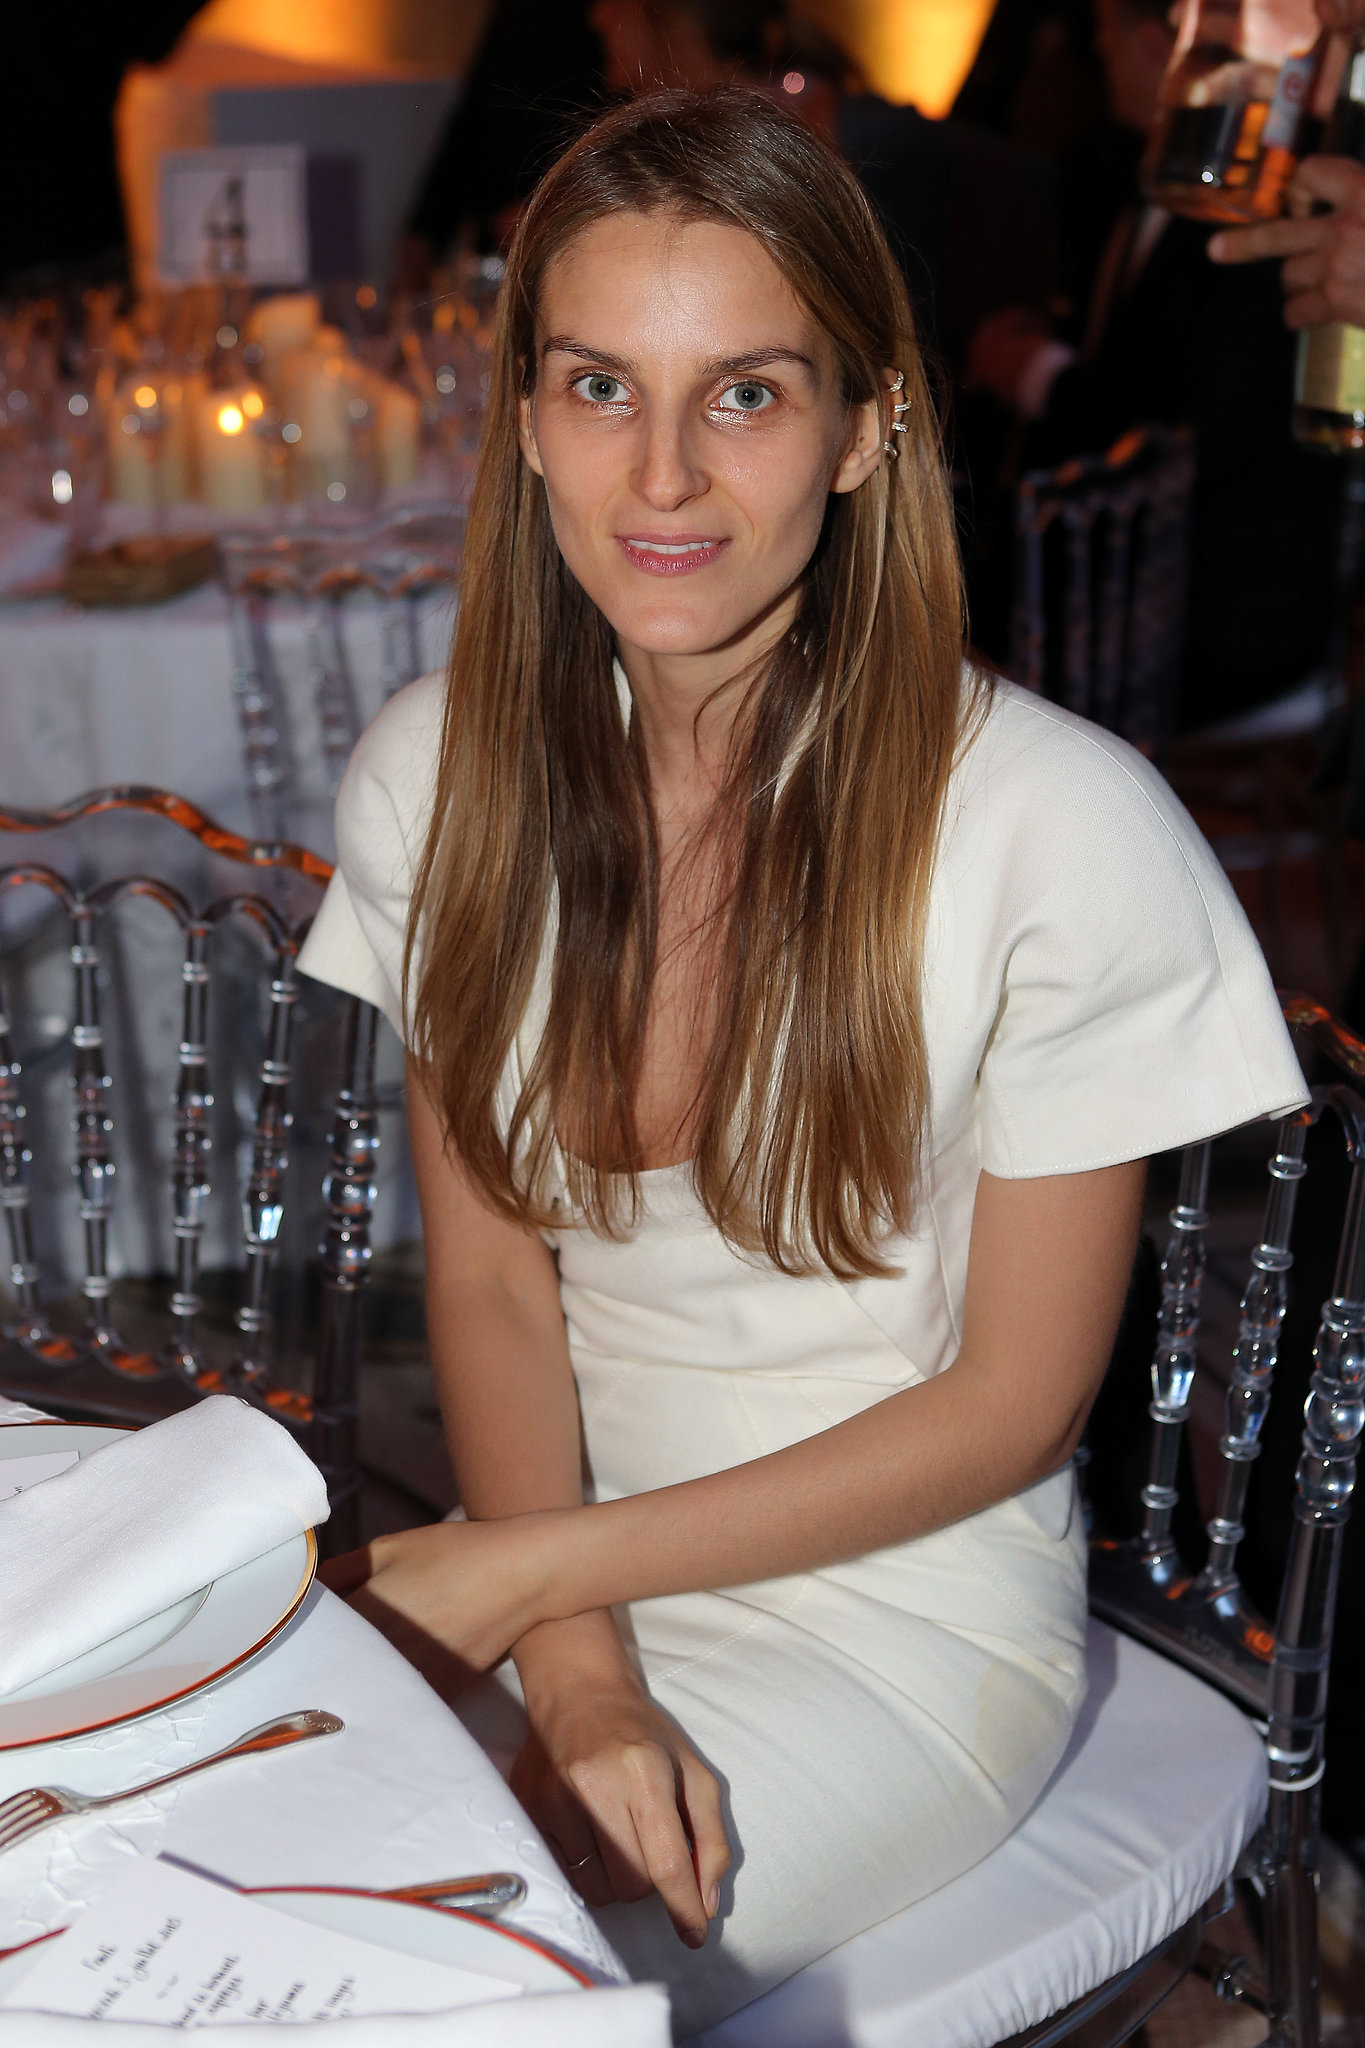 At Fendi's private dinner, Gaia Repossi styled her edgy jewelry designs with a white